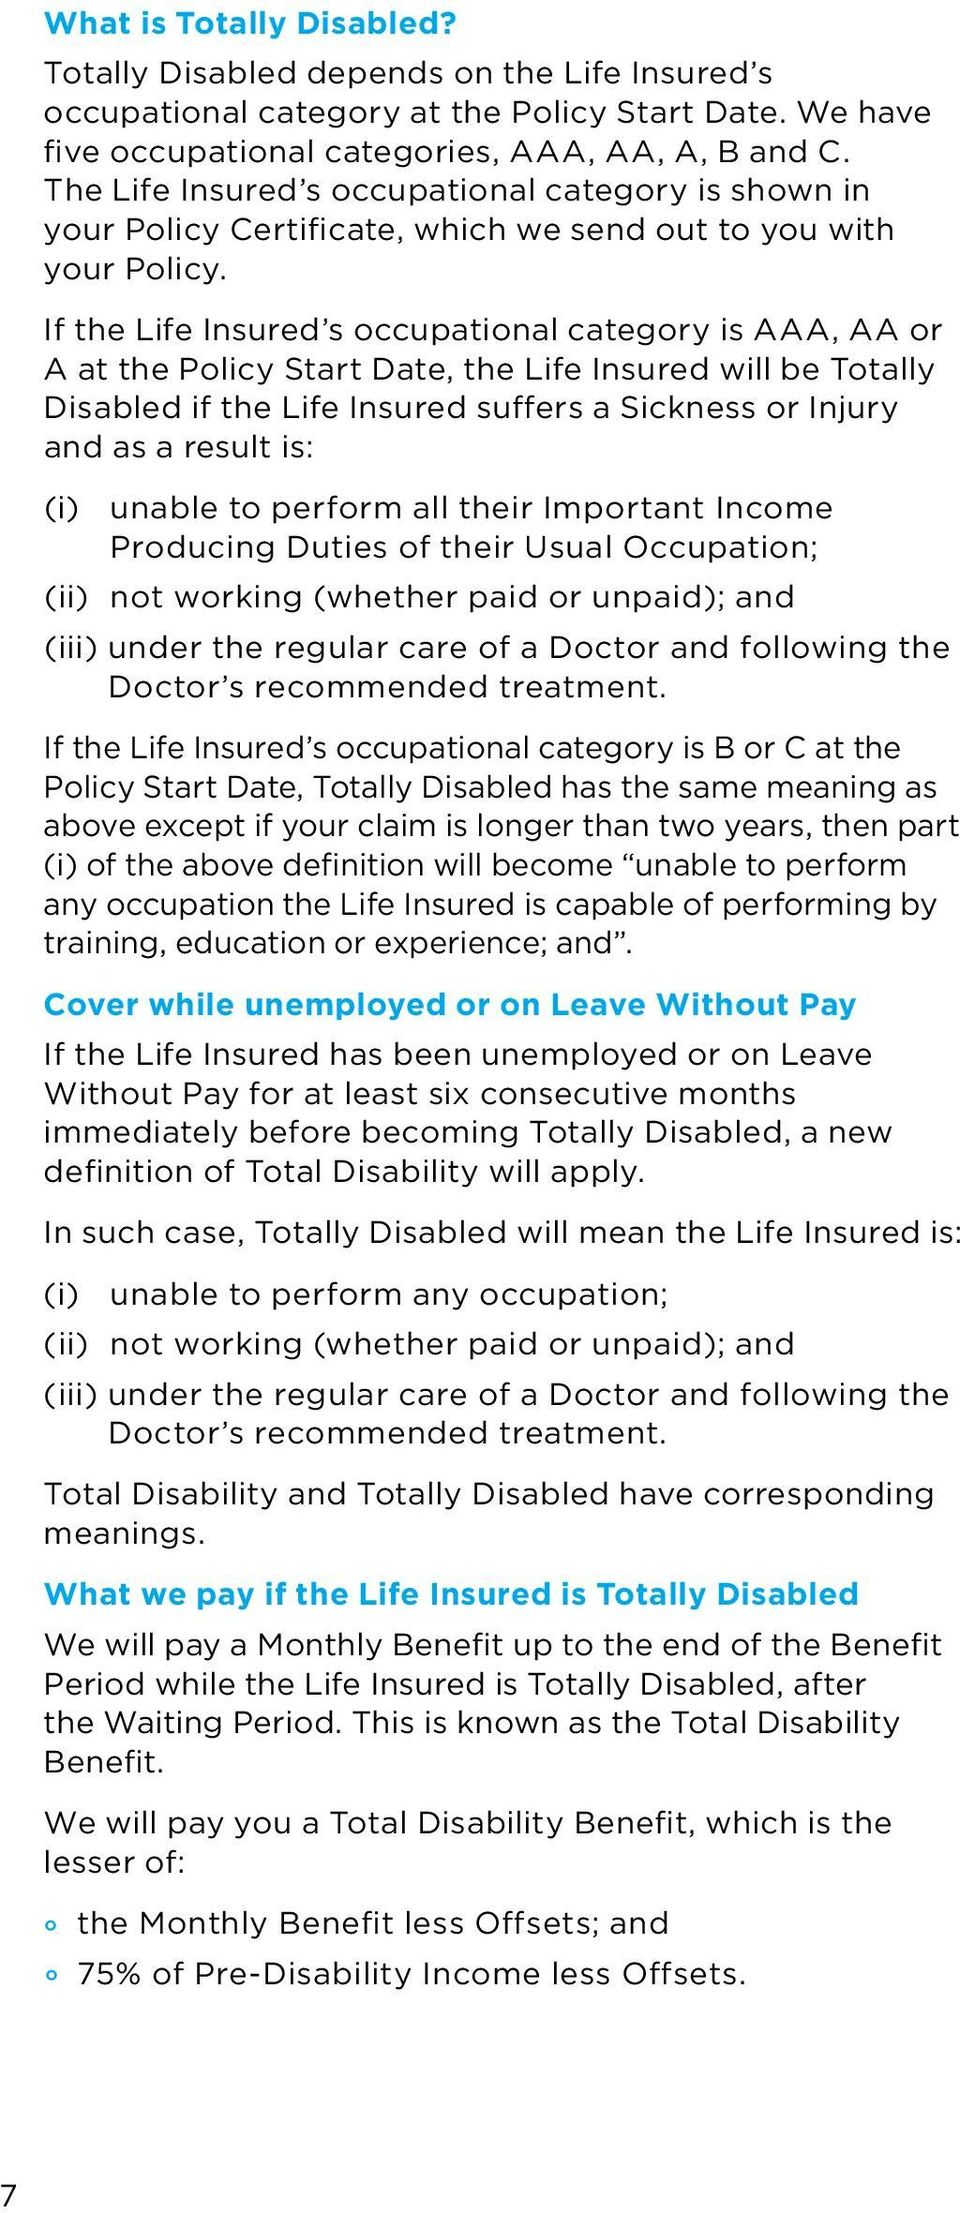 If the Life Insured s occupational category is AAA, AA or A at the Policy Start Date, the Life Insured will be Totally Disabled if the Life Insured suffers a Sickness or Injury and as a result is: